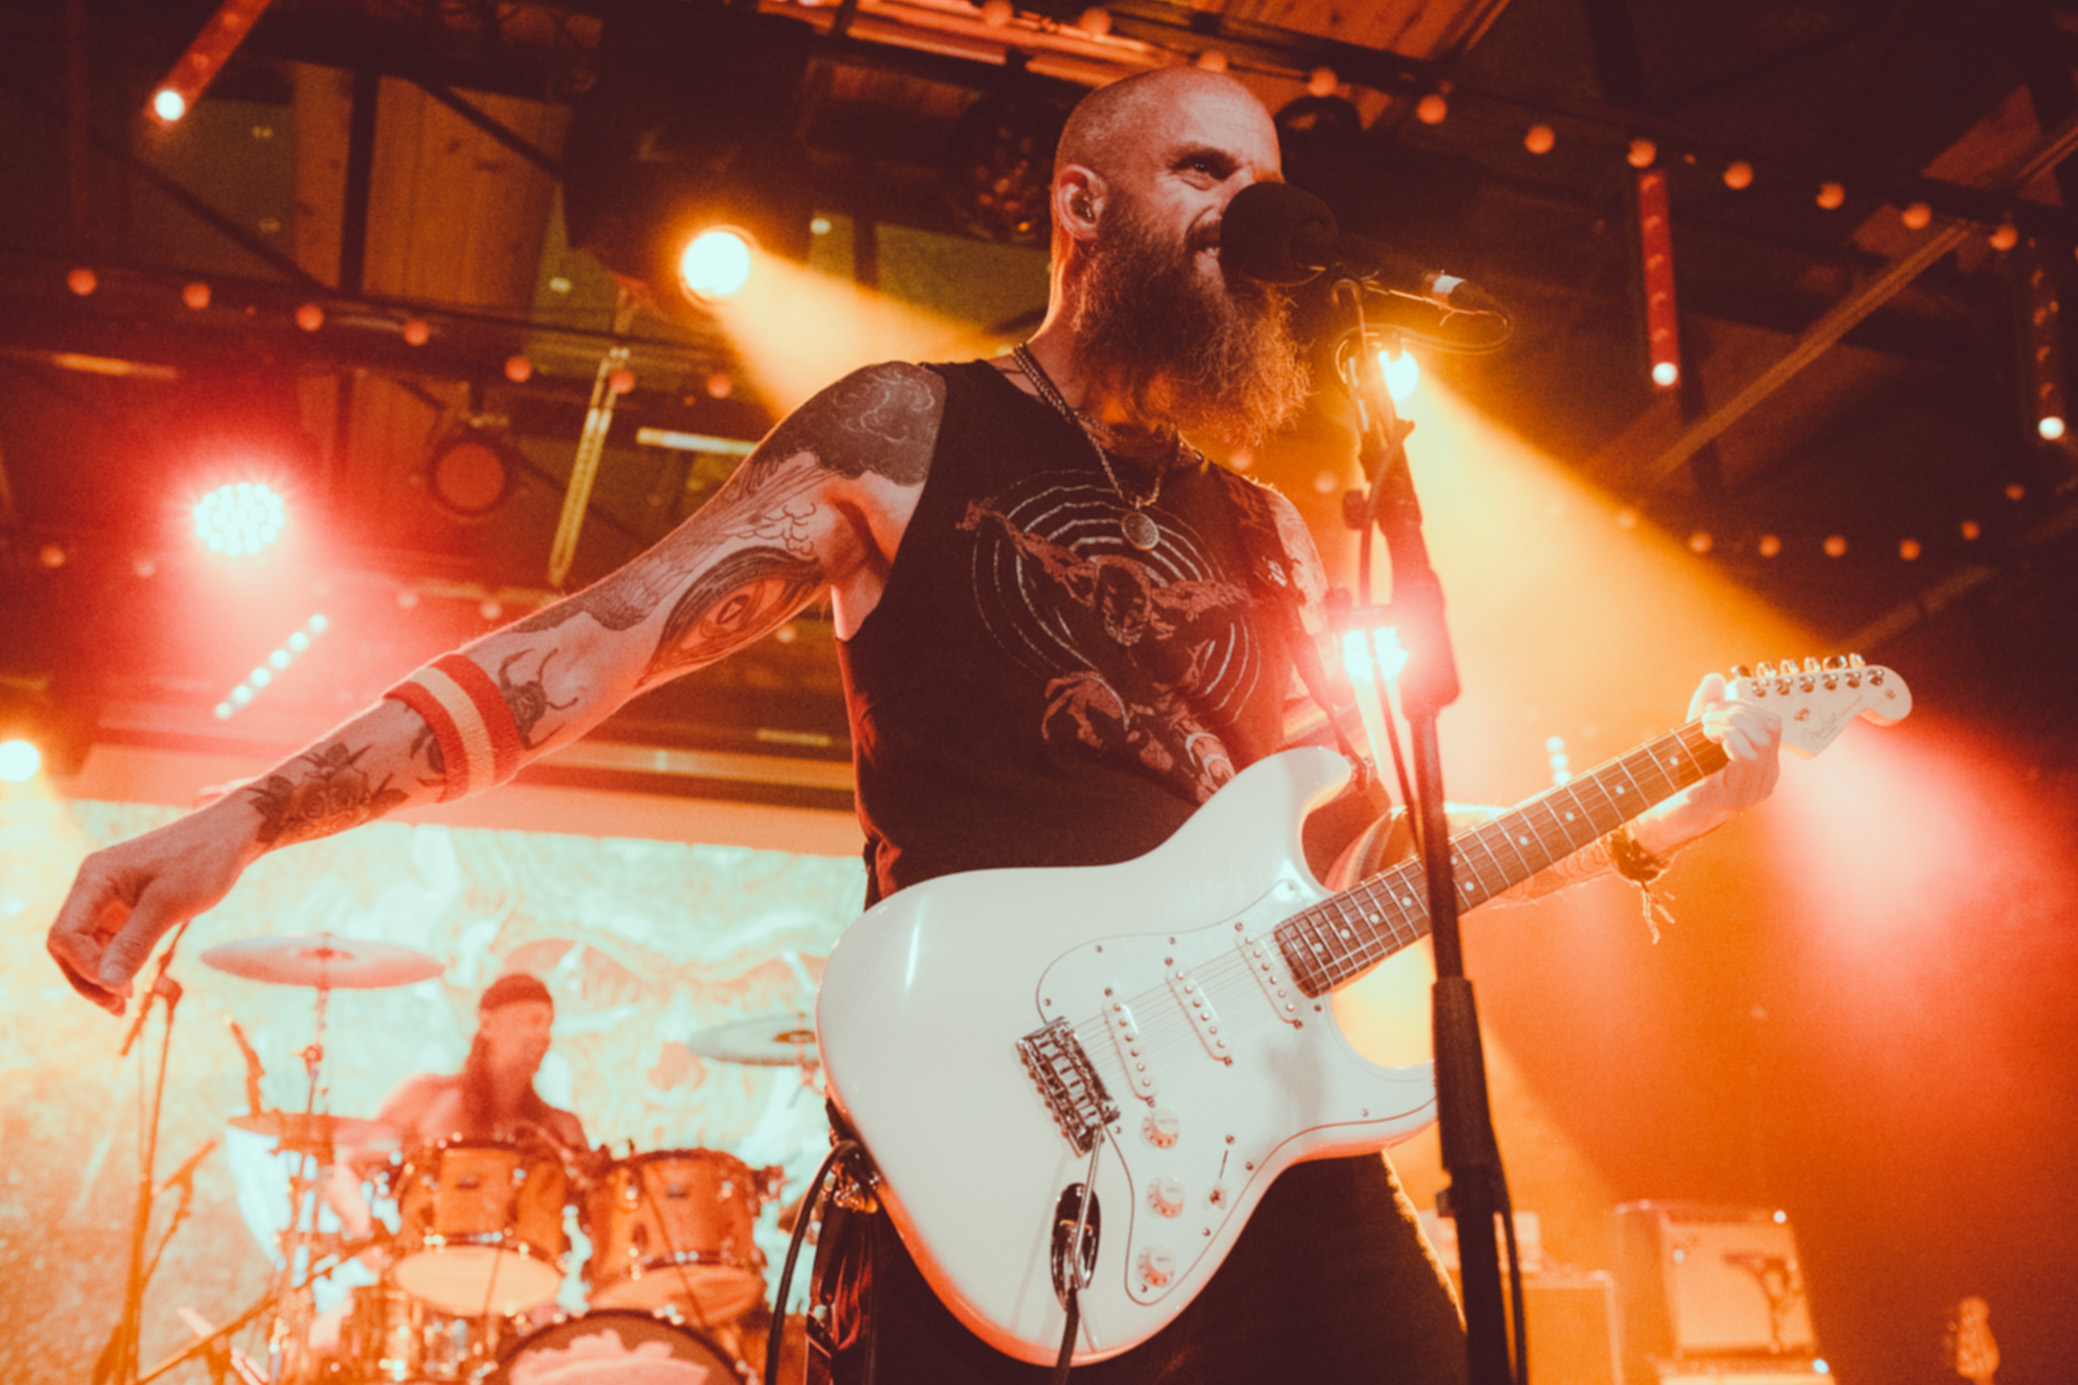 Baroness performs in concert at Saturn Birmingham in Birmingham, Alabama on July 31st, 2019. (Photo by David A. Smith / DSmithScenes)